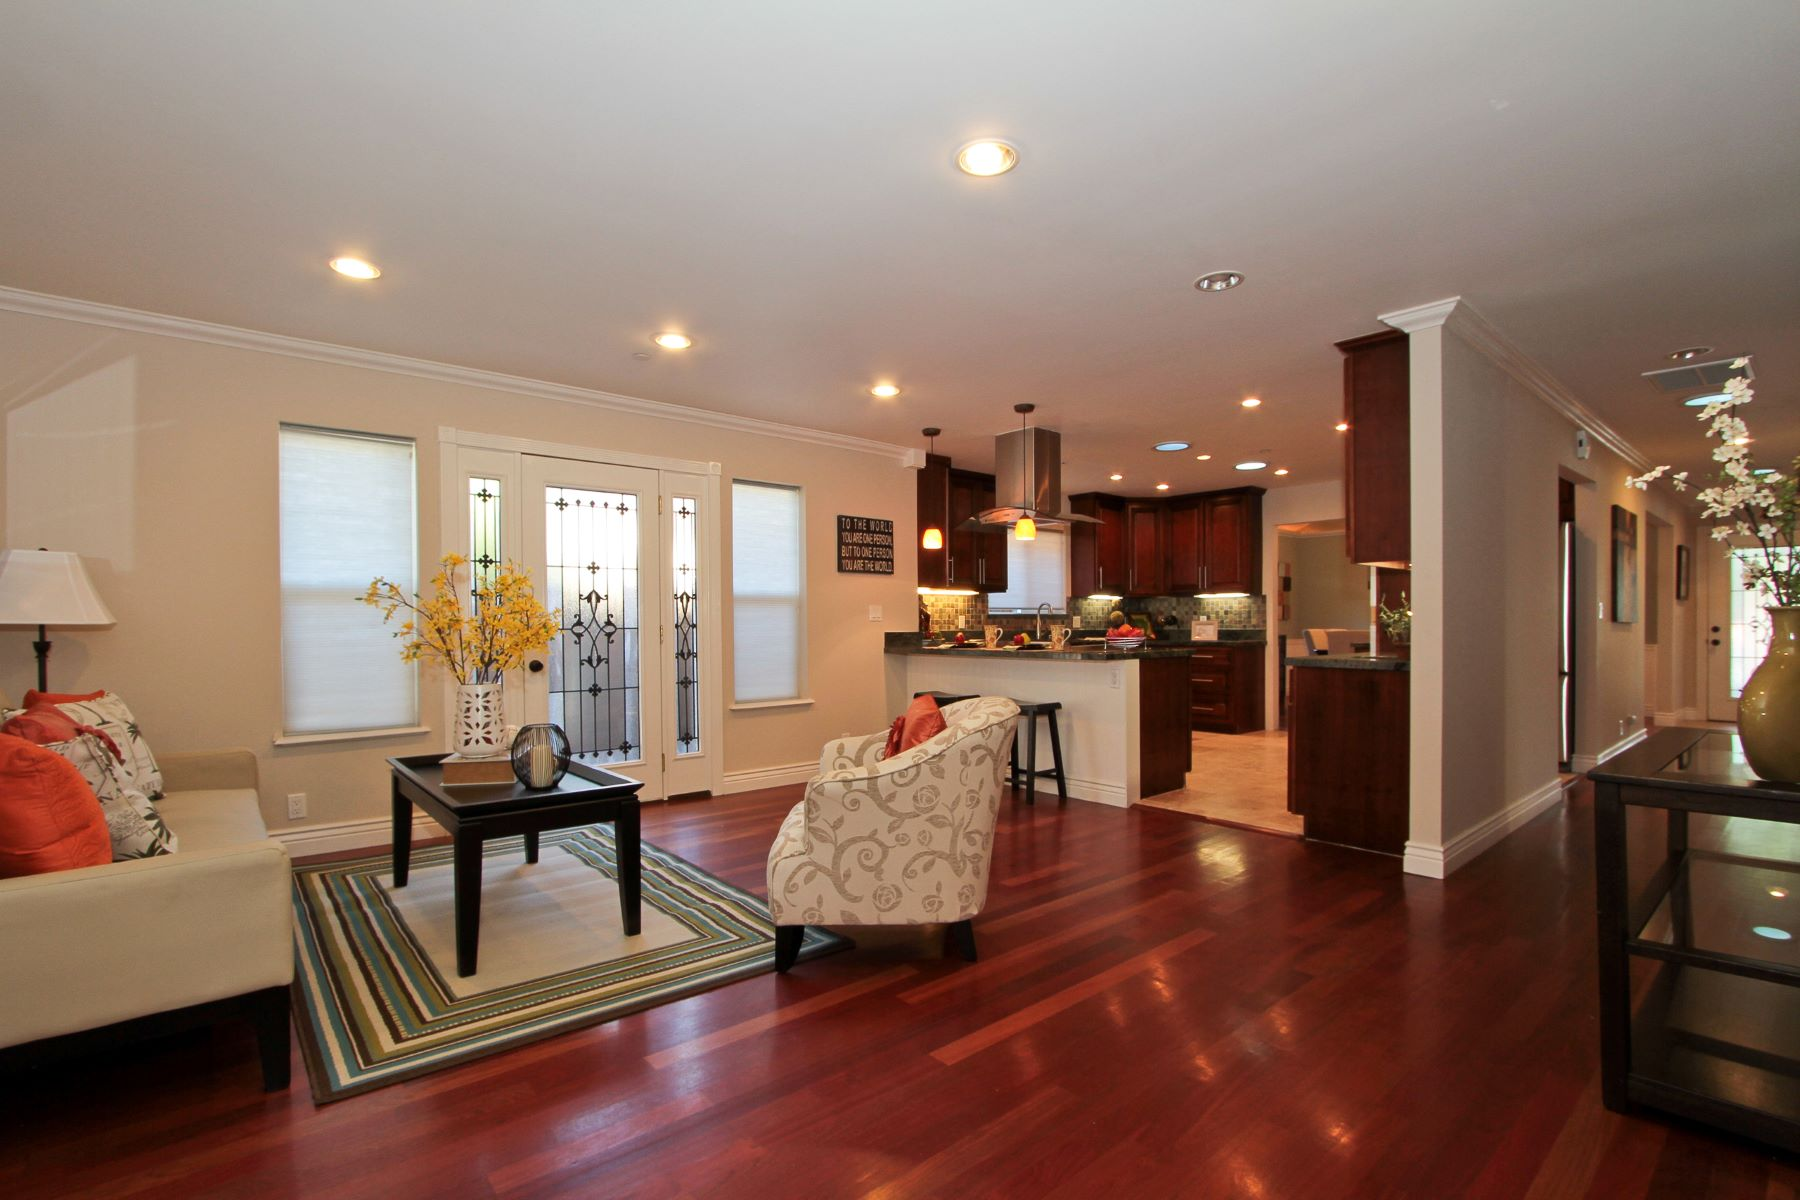 Additional photo for property listing at 1530 W Selby 1530 W Selby Lane Redwood City, California 94062 United States